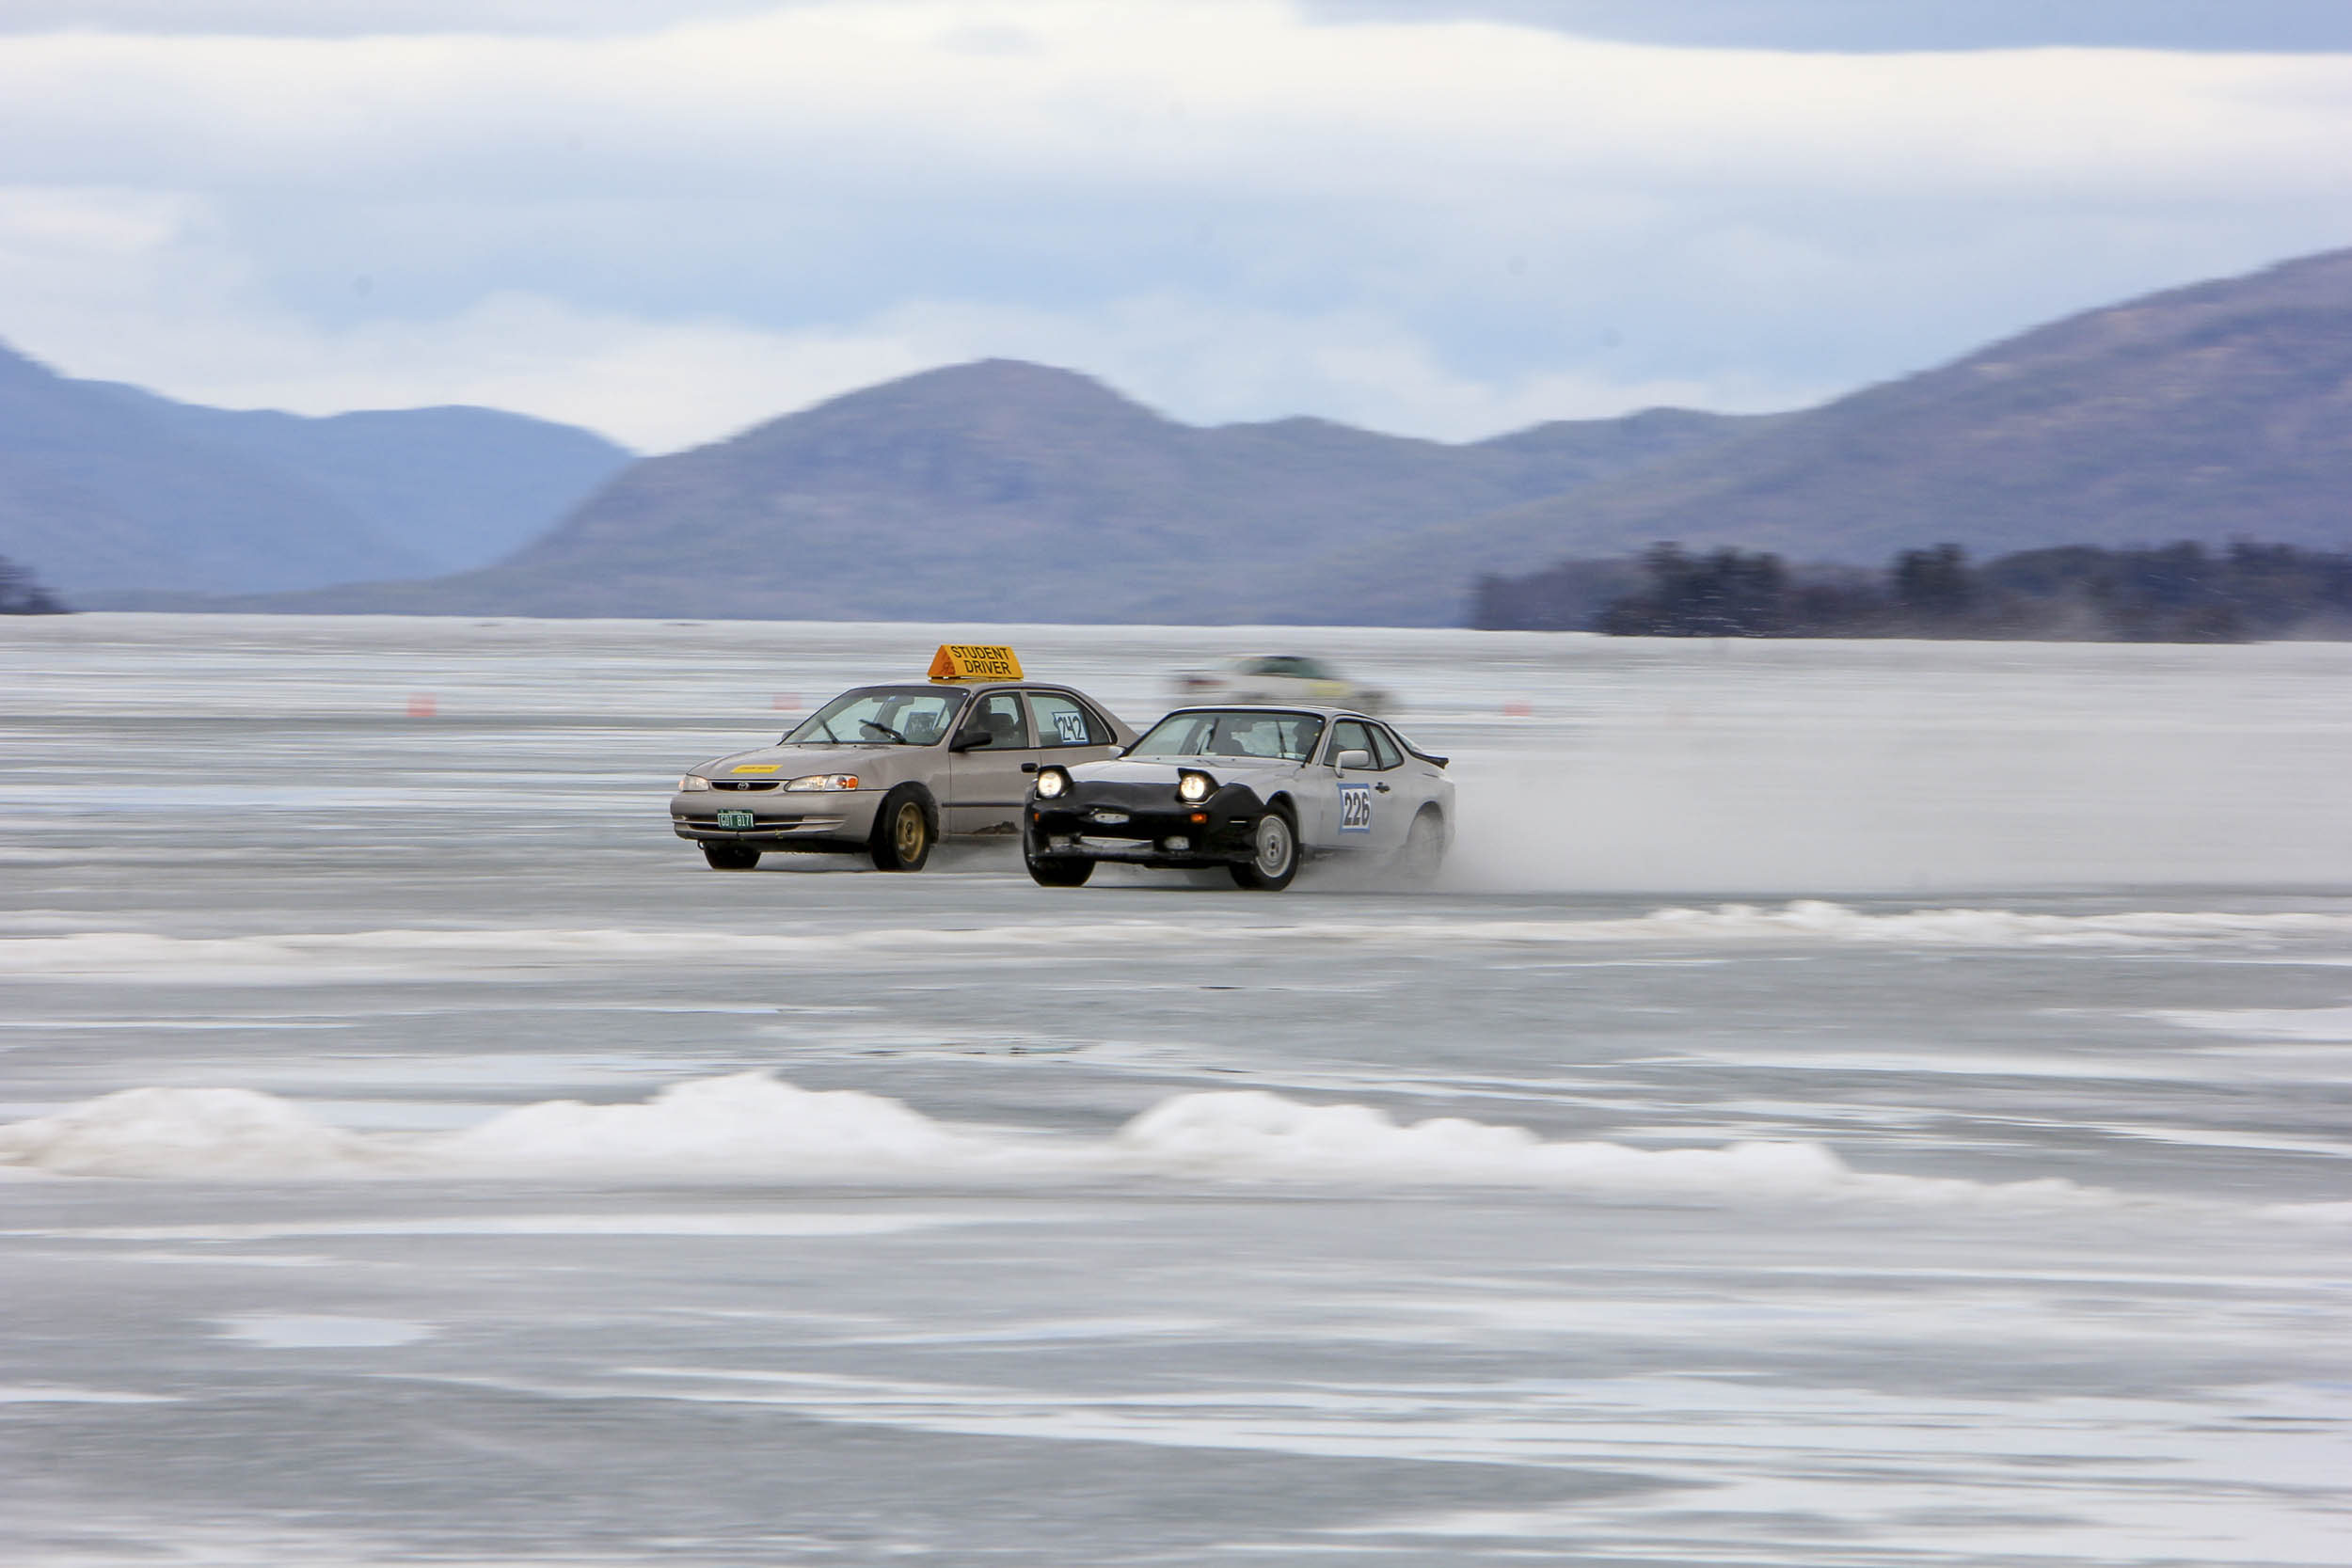 driving on a frozen lake